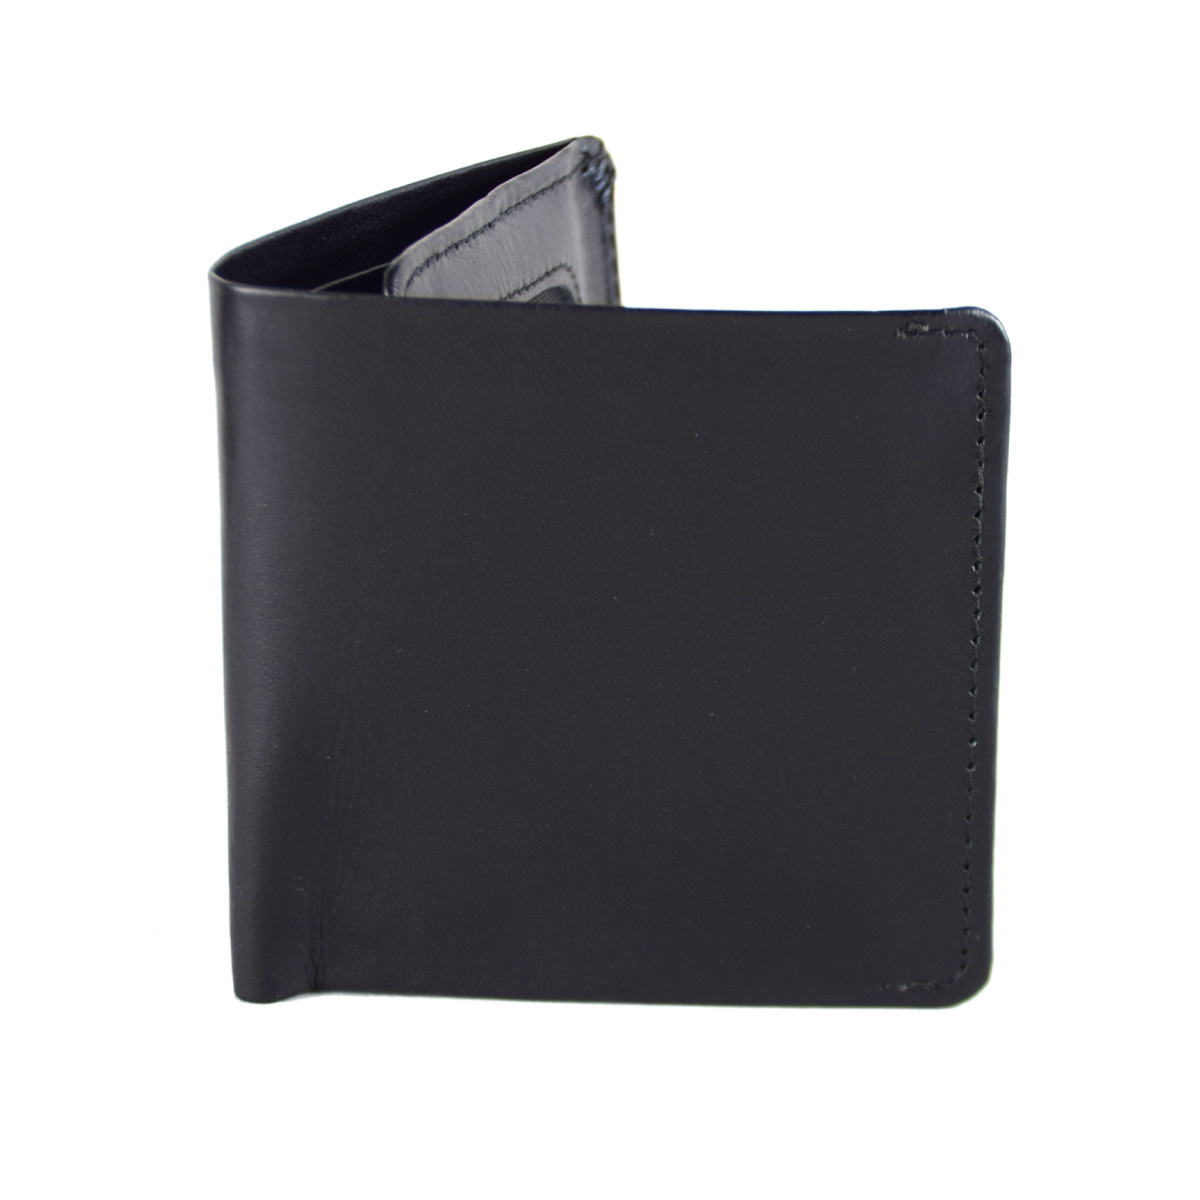 BLACK TRIFOLD WALLET WITH SEVERAL POCKETS